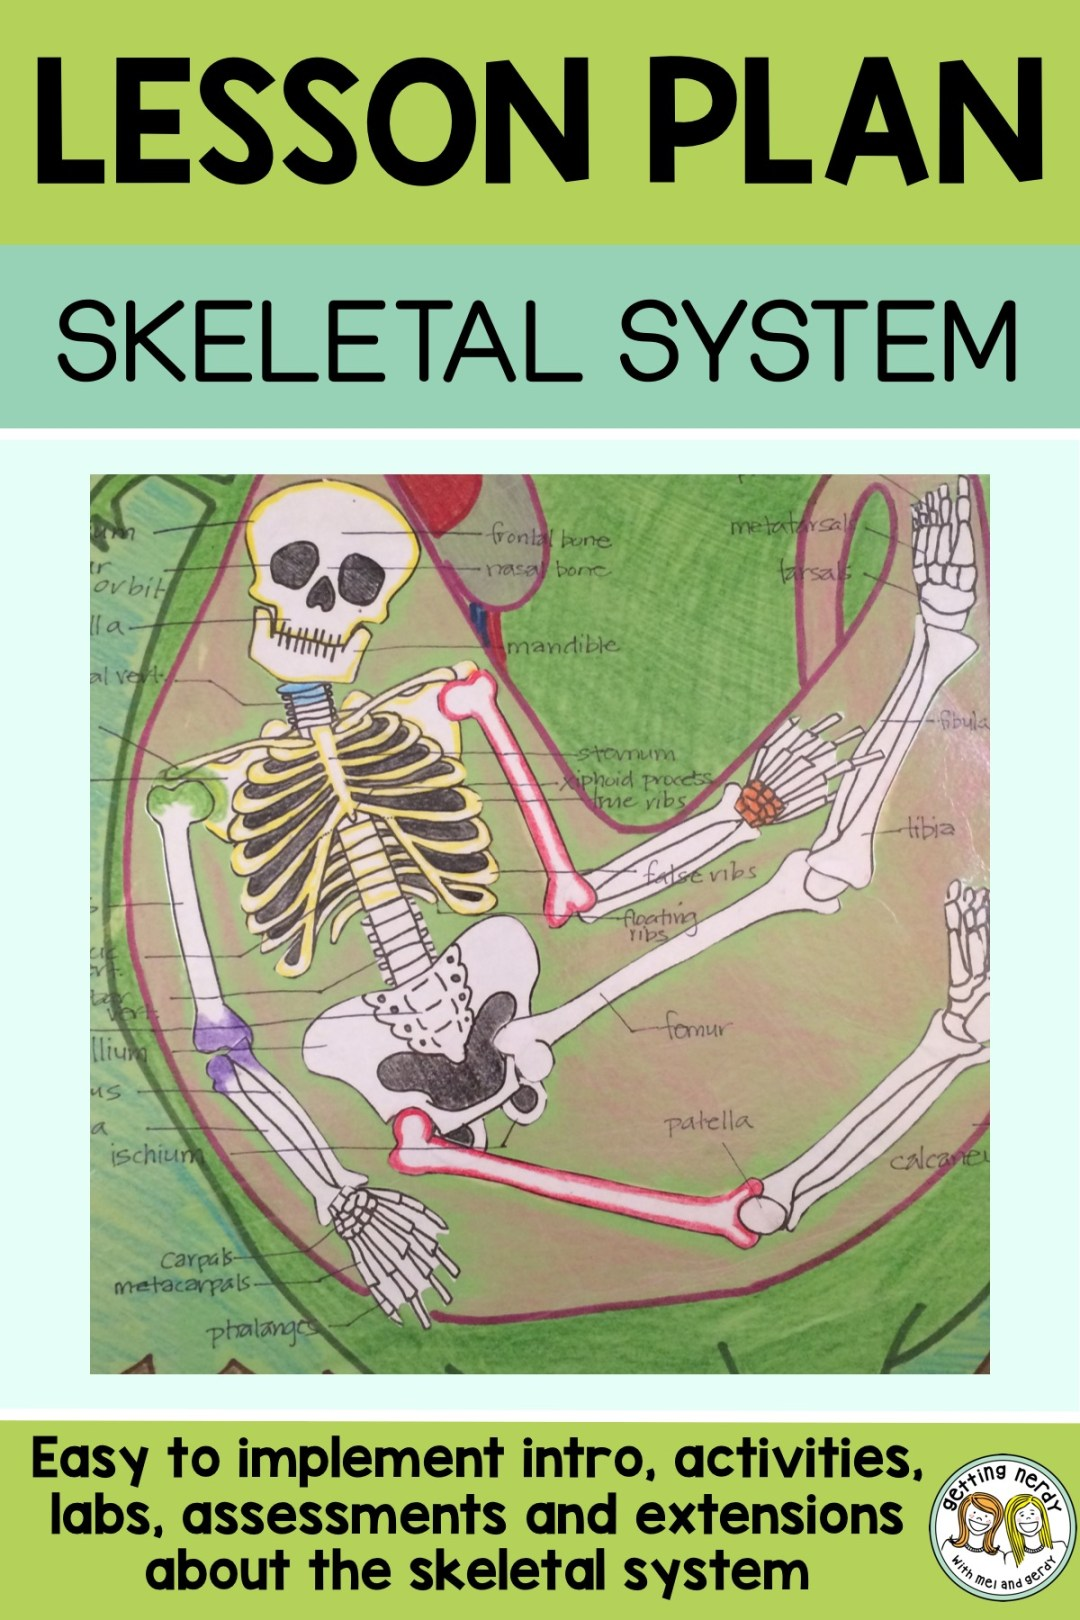 This is one of the best skeleton projects I used to teach the skeletal system #gettingnerdyscience #skeletalsystem #sciencelessonplan